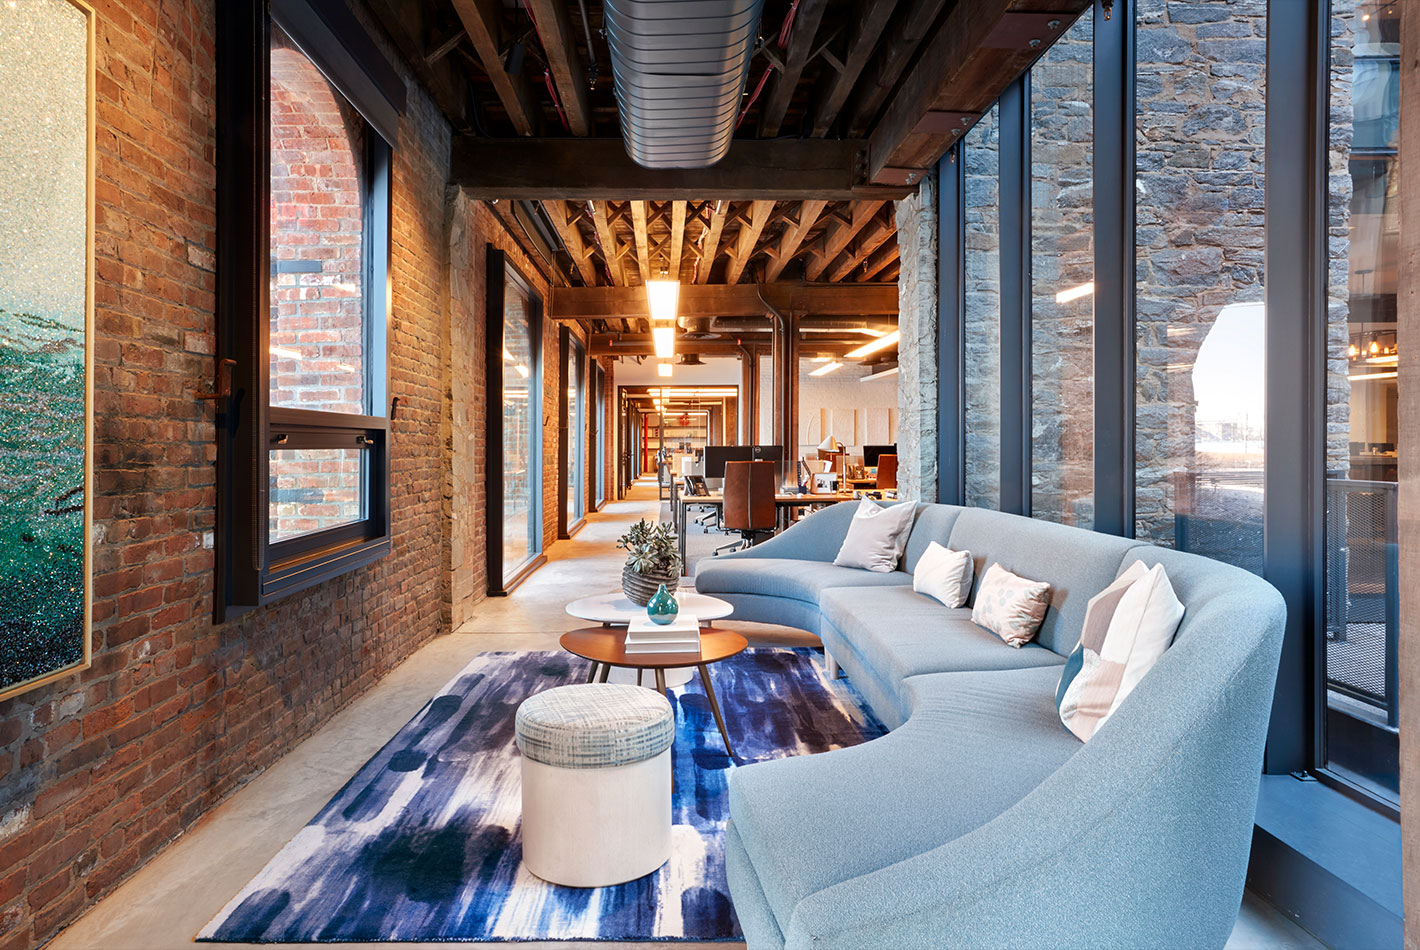 A long corridor with arched windows facing the Manhattan Bridge is used for multiple seating areas perfect for casual meetings at West Elm Headquarters.